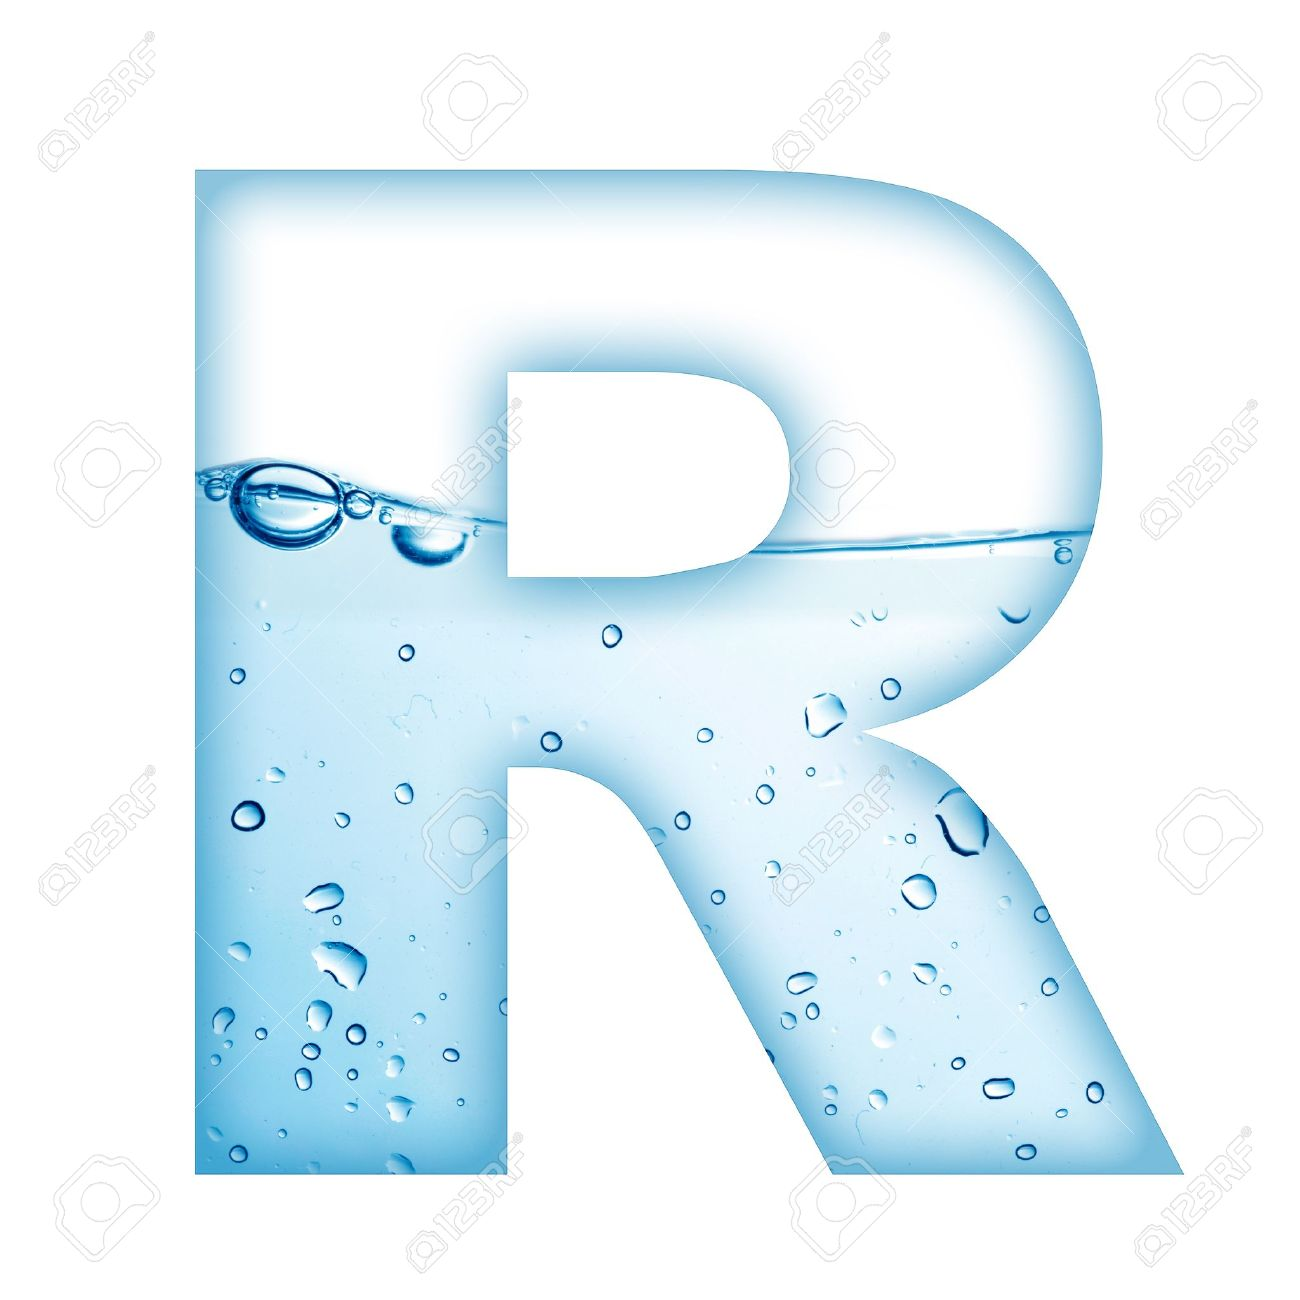 Alphabet Letter Made From Water And Bubble Letter R Stock Photo